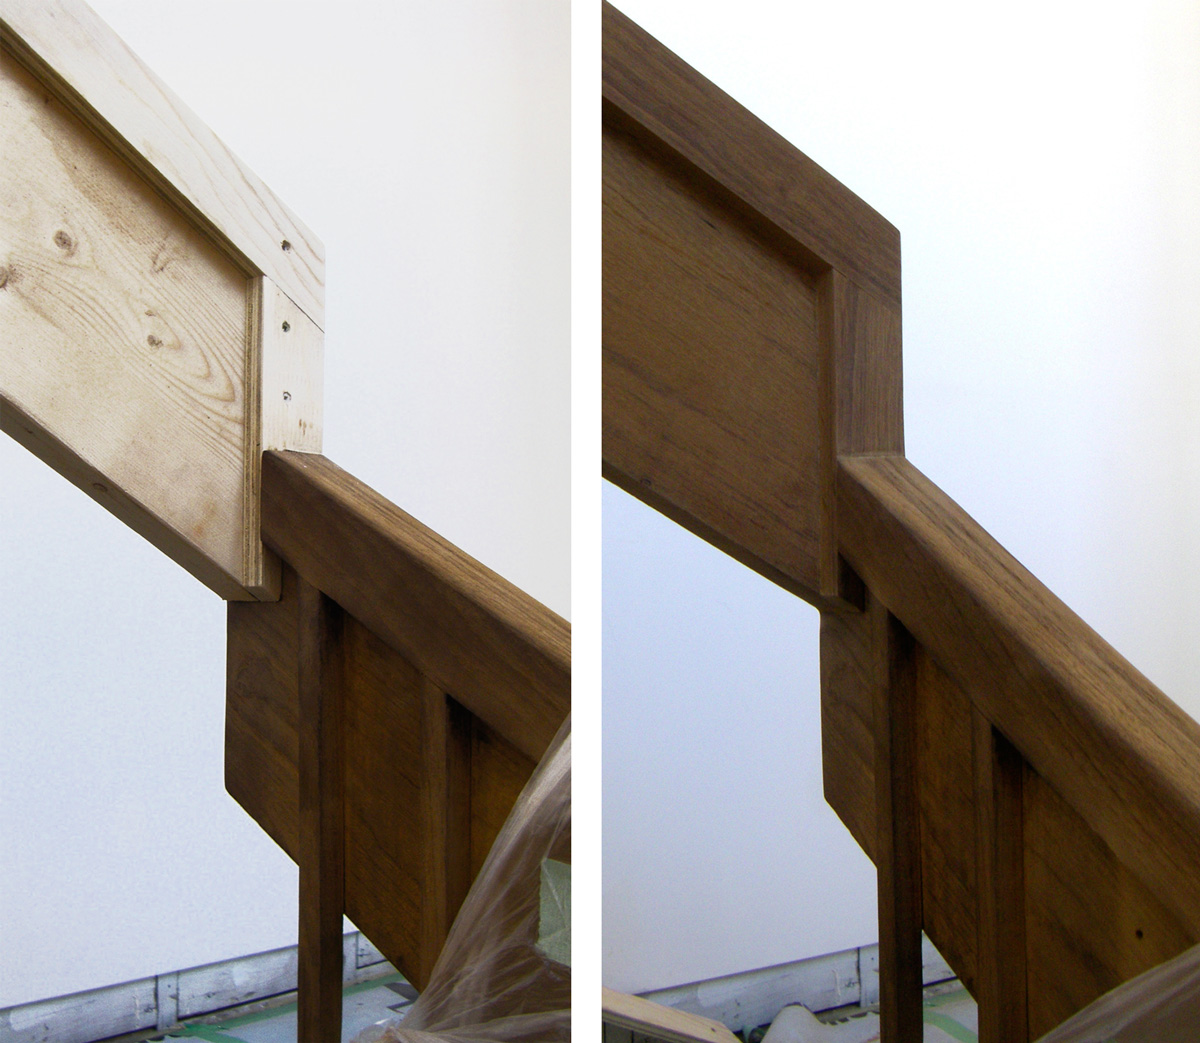 Unit 7 Architecture | Residential - Victoria Beach Summer Home V - BEFORE & AFTER RAILING DETAIL